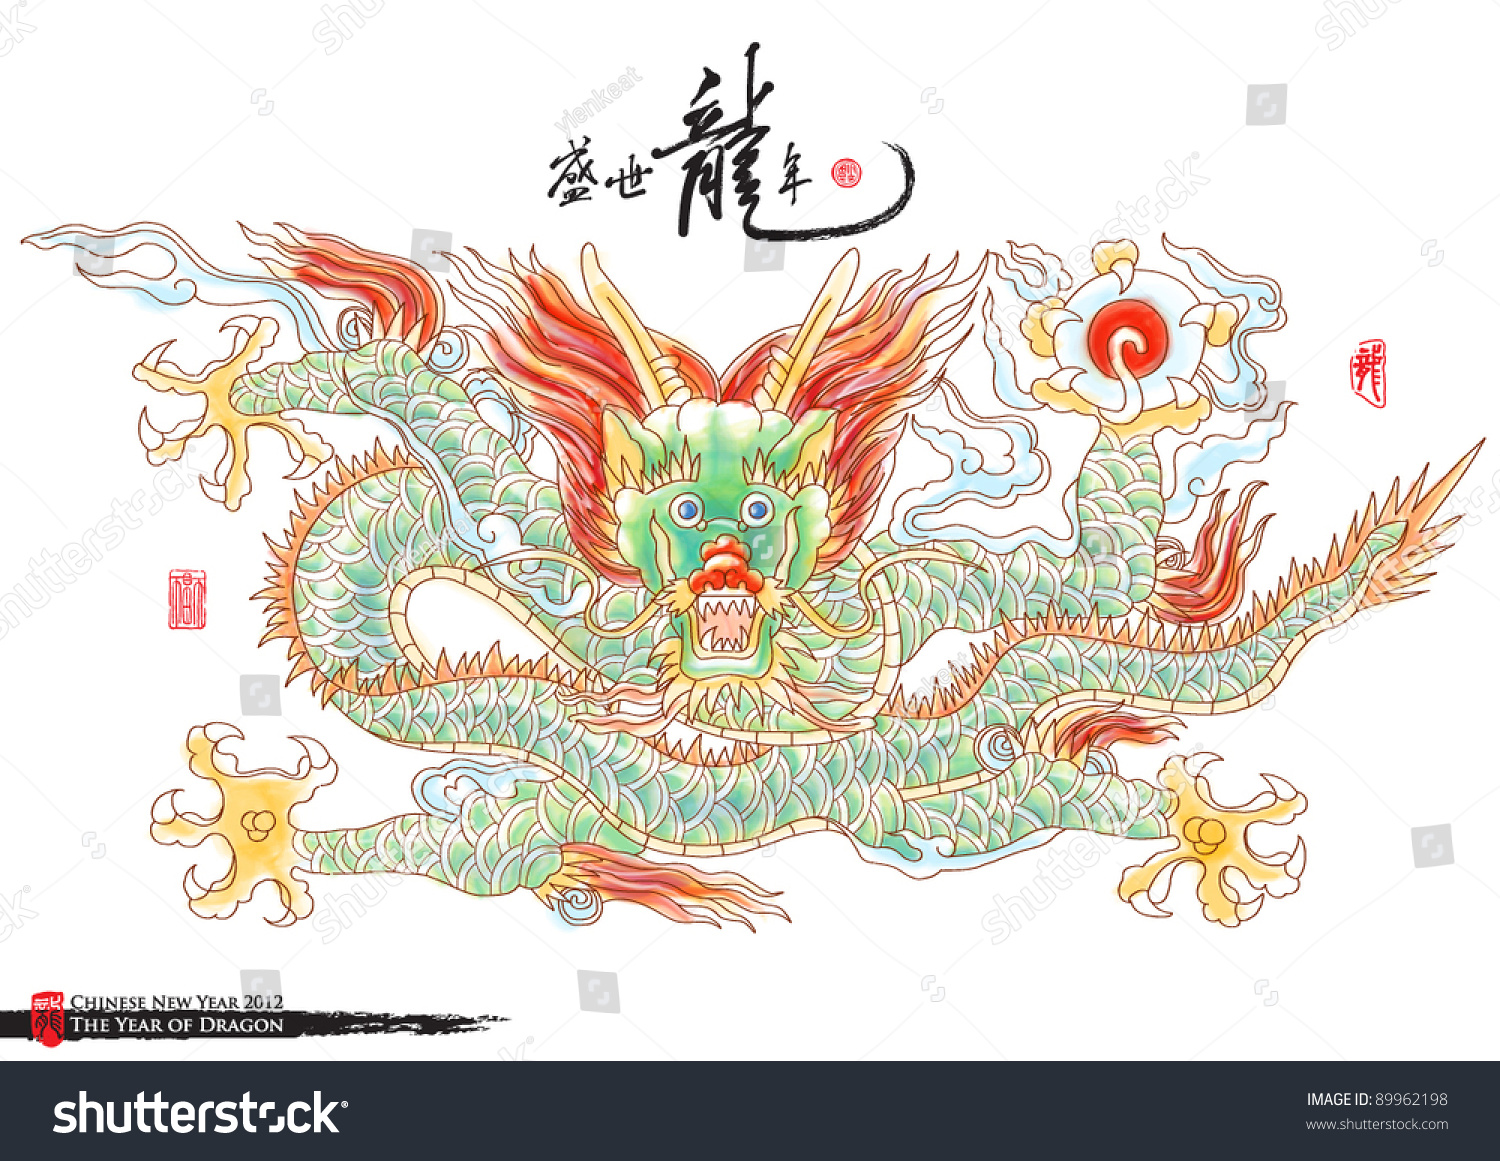 chinese ink painting of dragon translation peaceful dragon year ez canvas